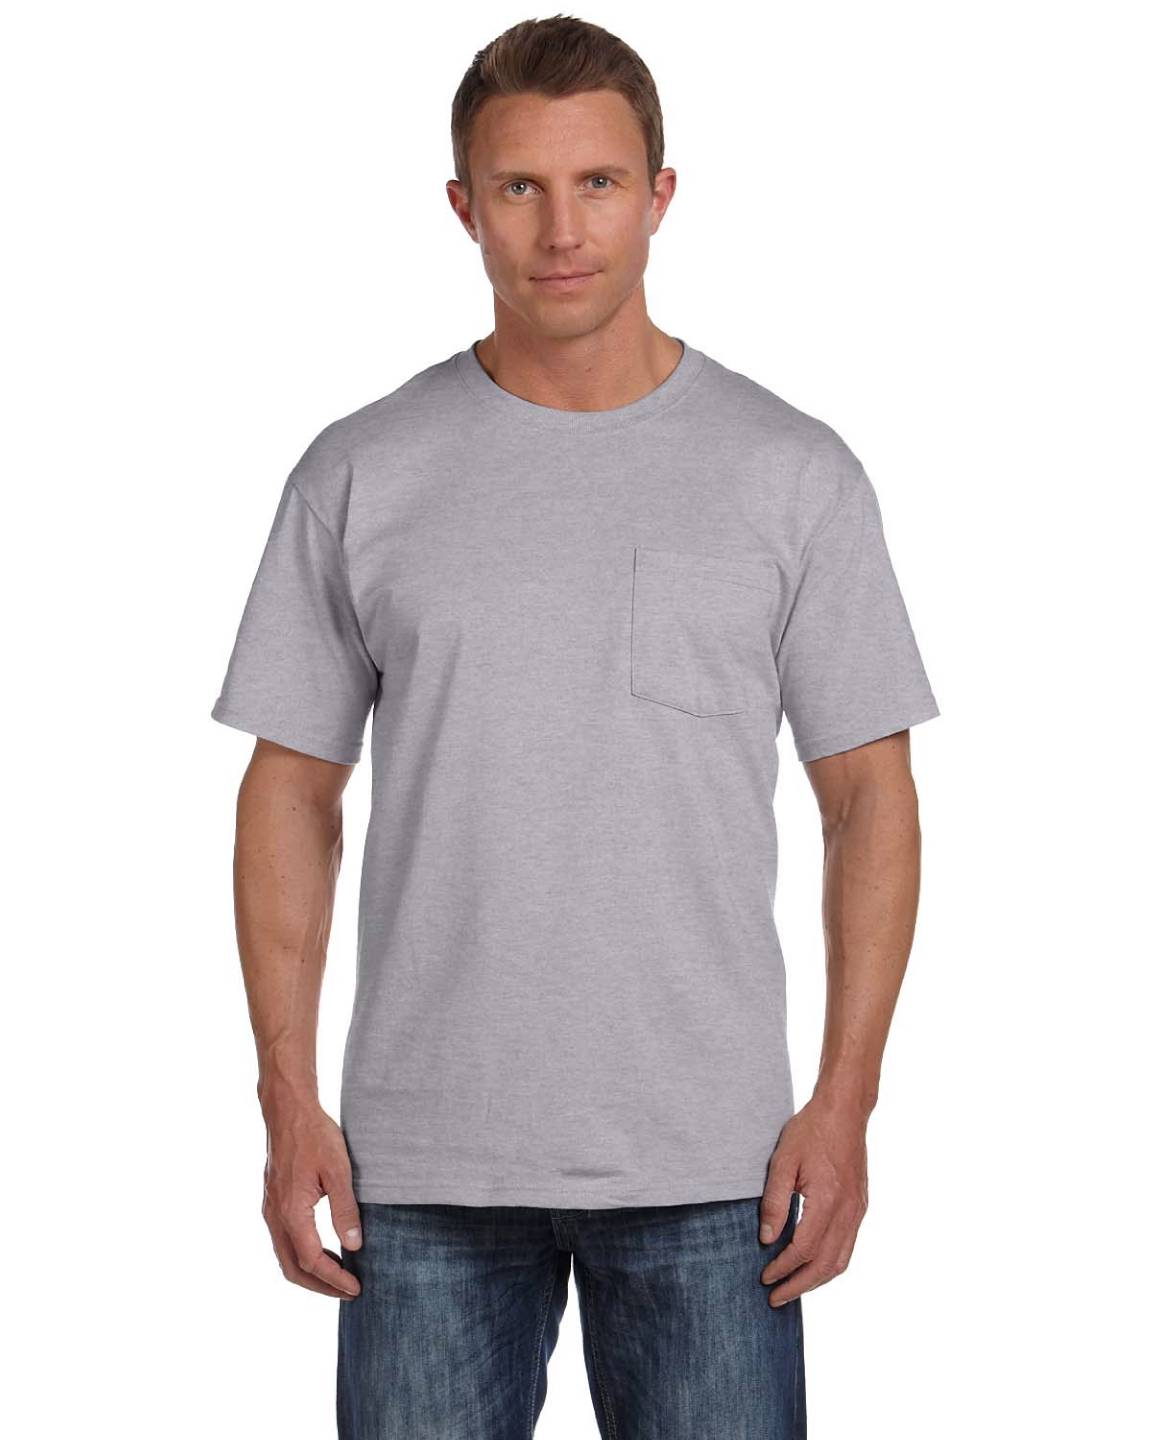 Fruit of the loom men 39 s 5 oz 100 heavy cotton pocket s 3xl for Fruits of the loom t shirts